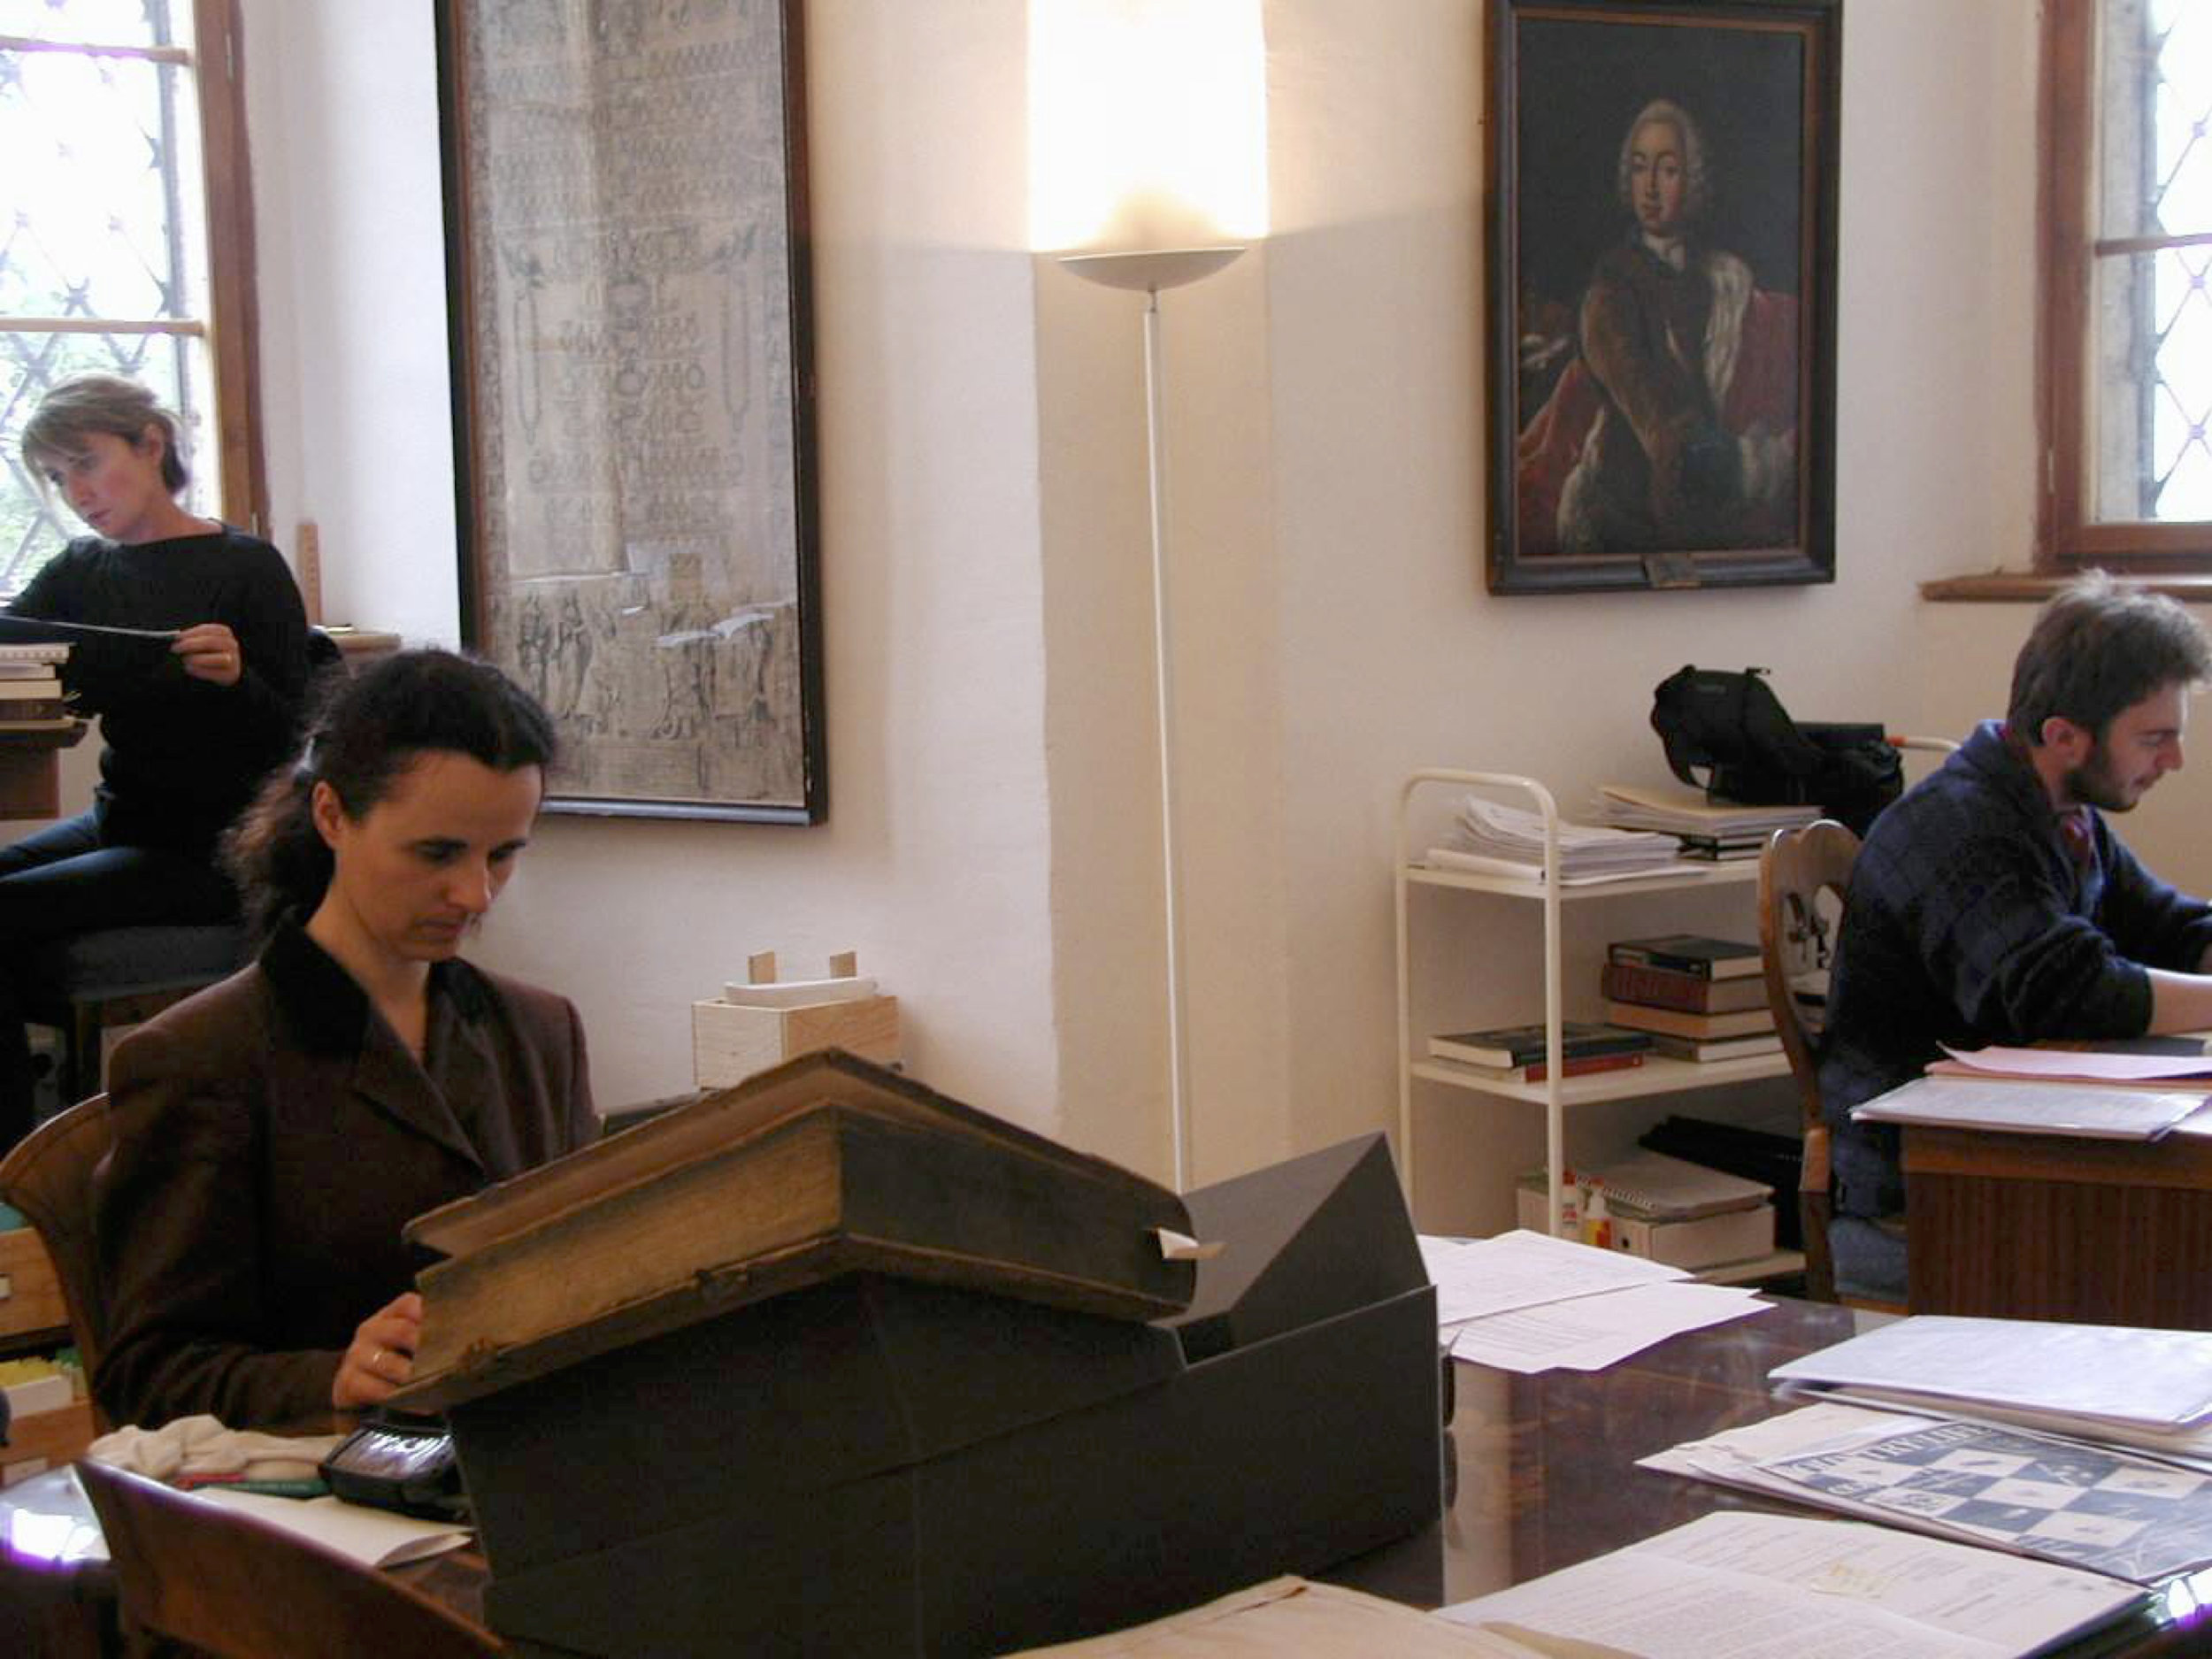 Charles University students and researchers studying in the Lobkowicz library